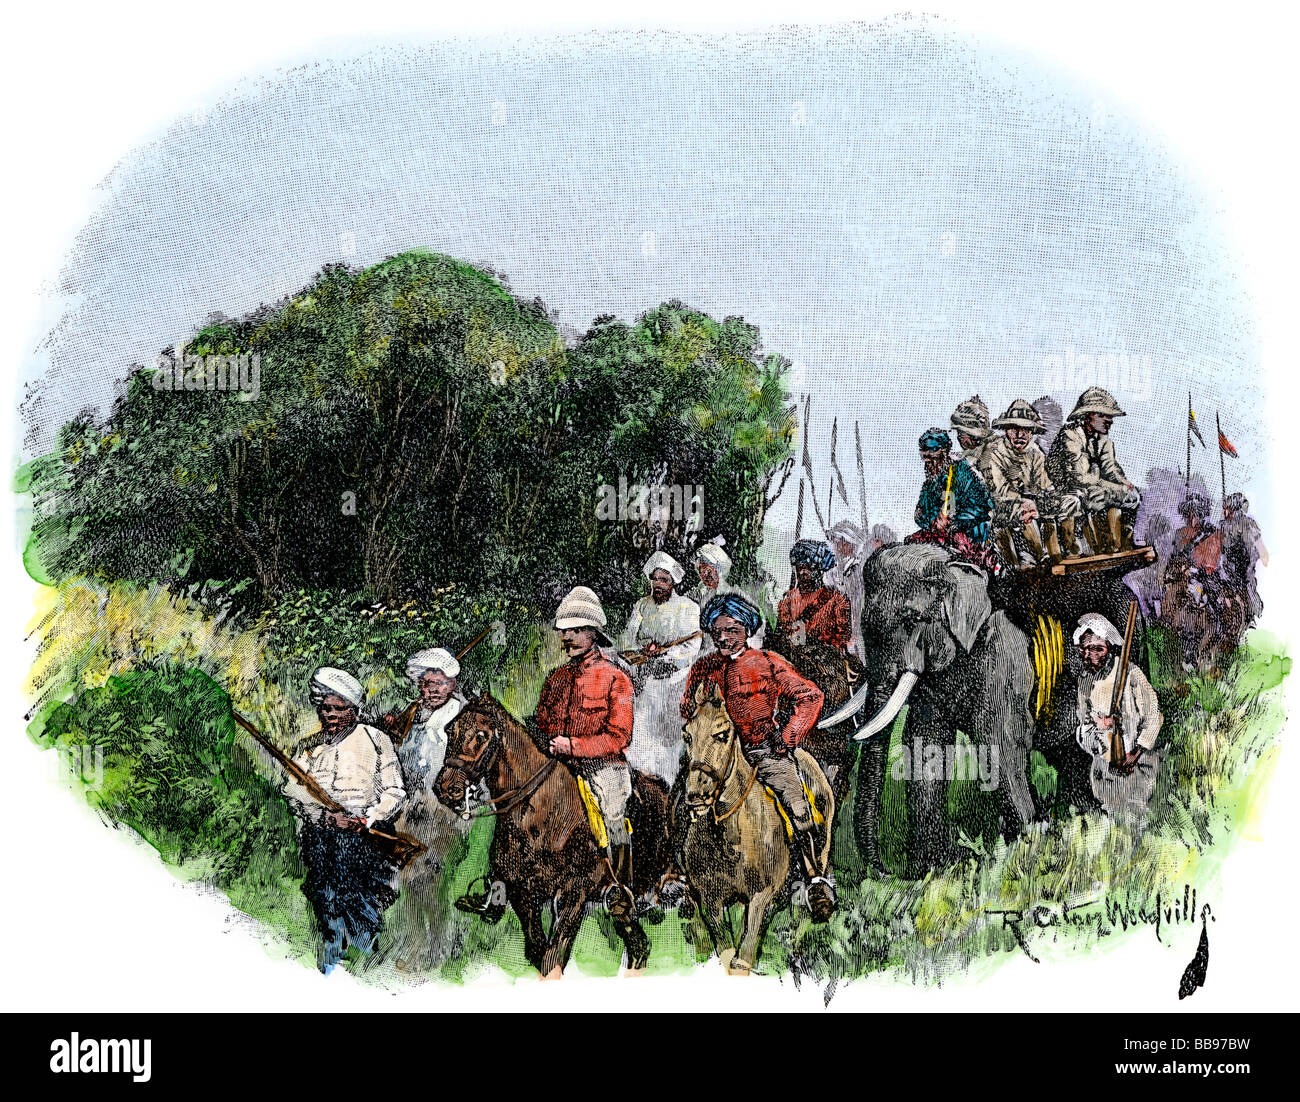 British hunting party in India en route to a tiger netting circa 1890. Hand-colored woodcut - Stock Image